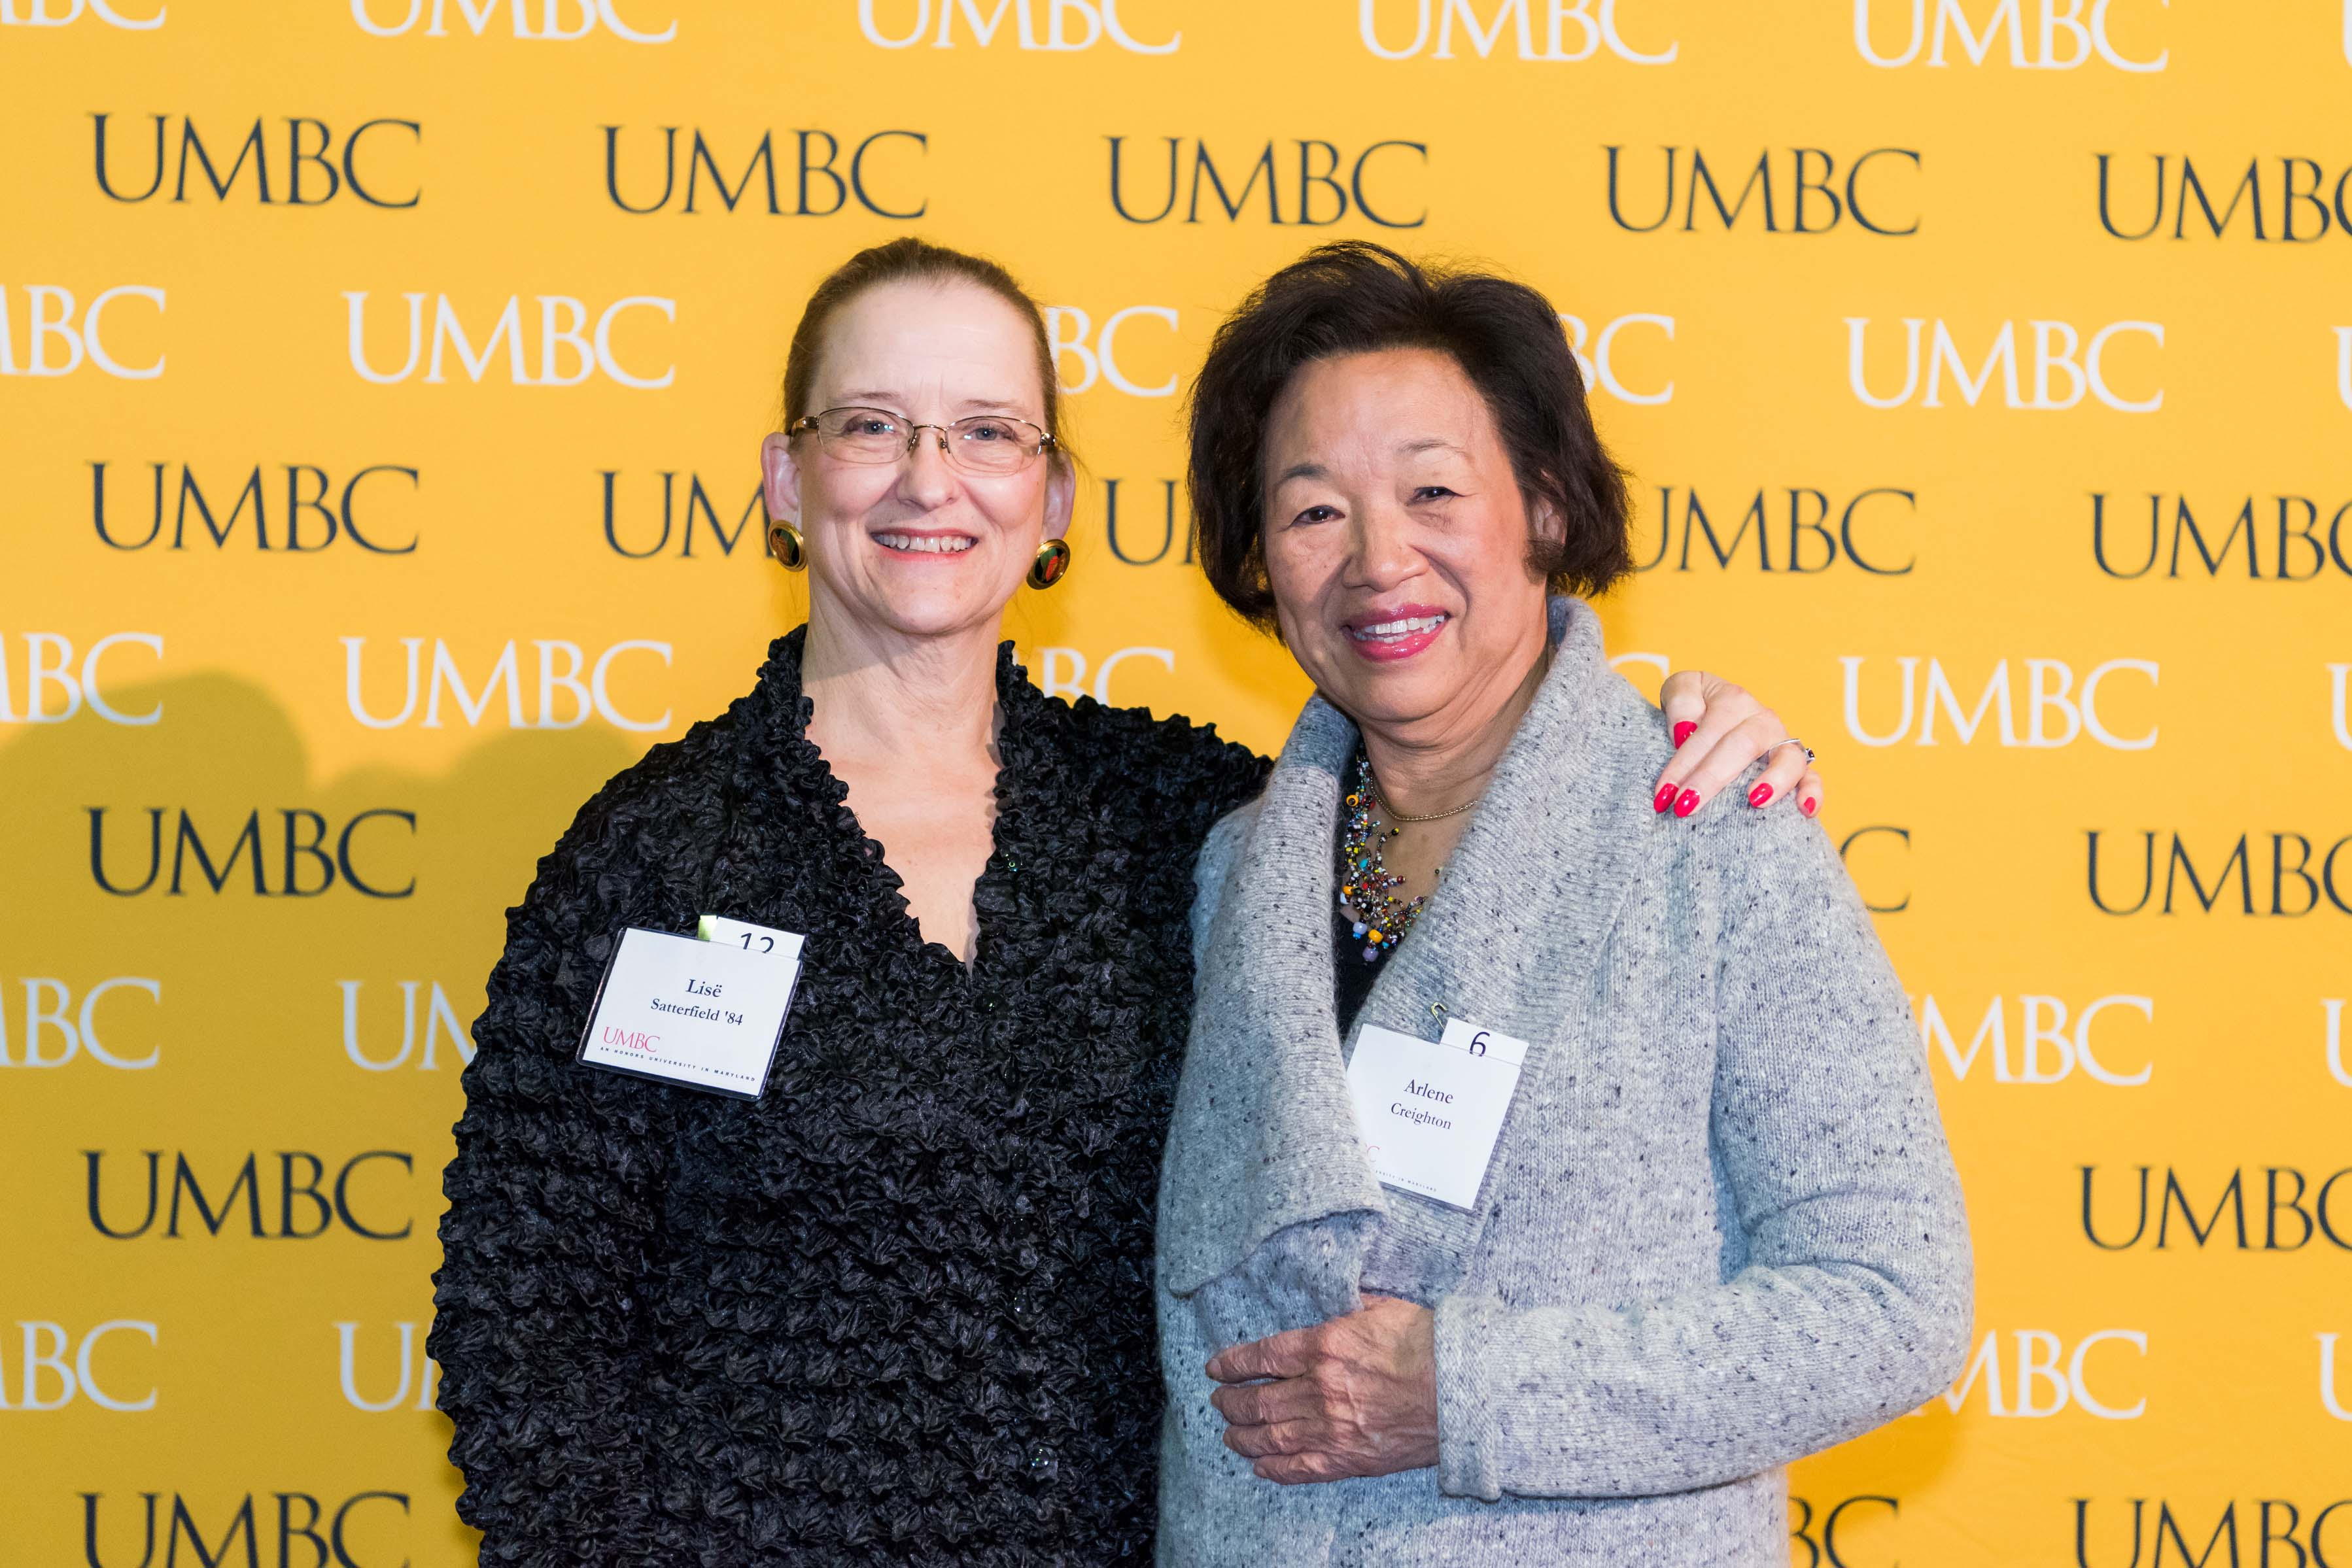 Two women pose in front of the UMBC wall at the scholarship luncheon